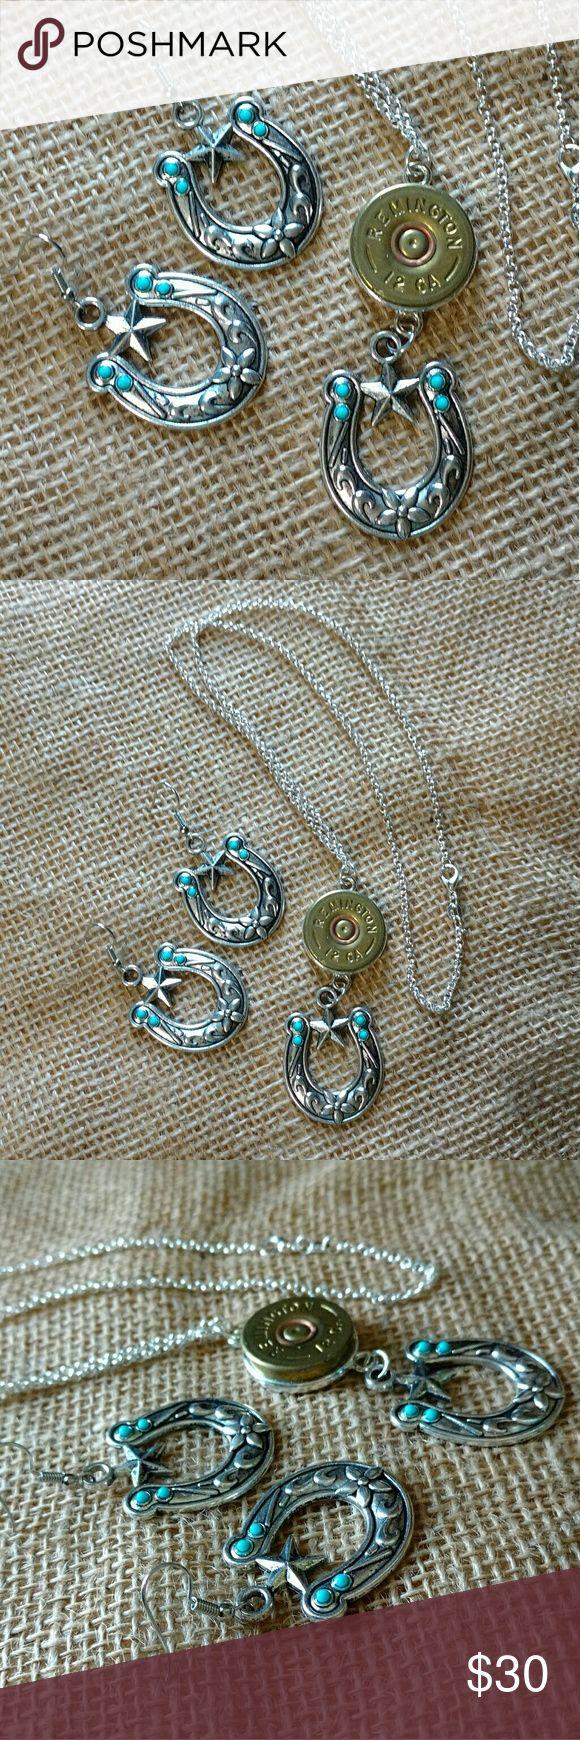 Horseshoe Shotgun Shell Jewelry Set Genuine 12-gauge shotgun shell cut and hand polished, placed in a setting with large horseshoe charm with small faux turquoise accents.  Sterling silver roho necklace is 20 inches.   Comes with matching charm earrings, fish-hook style hypoallergenic nickel-free.  Charm is 1-1/2 x 1 inches.  Handmade by me.  Made in USA.  Made in Michigan. Variations available upon request. Handmade Jewelry